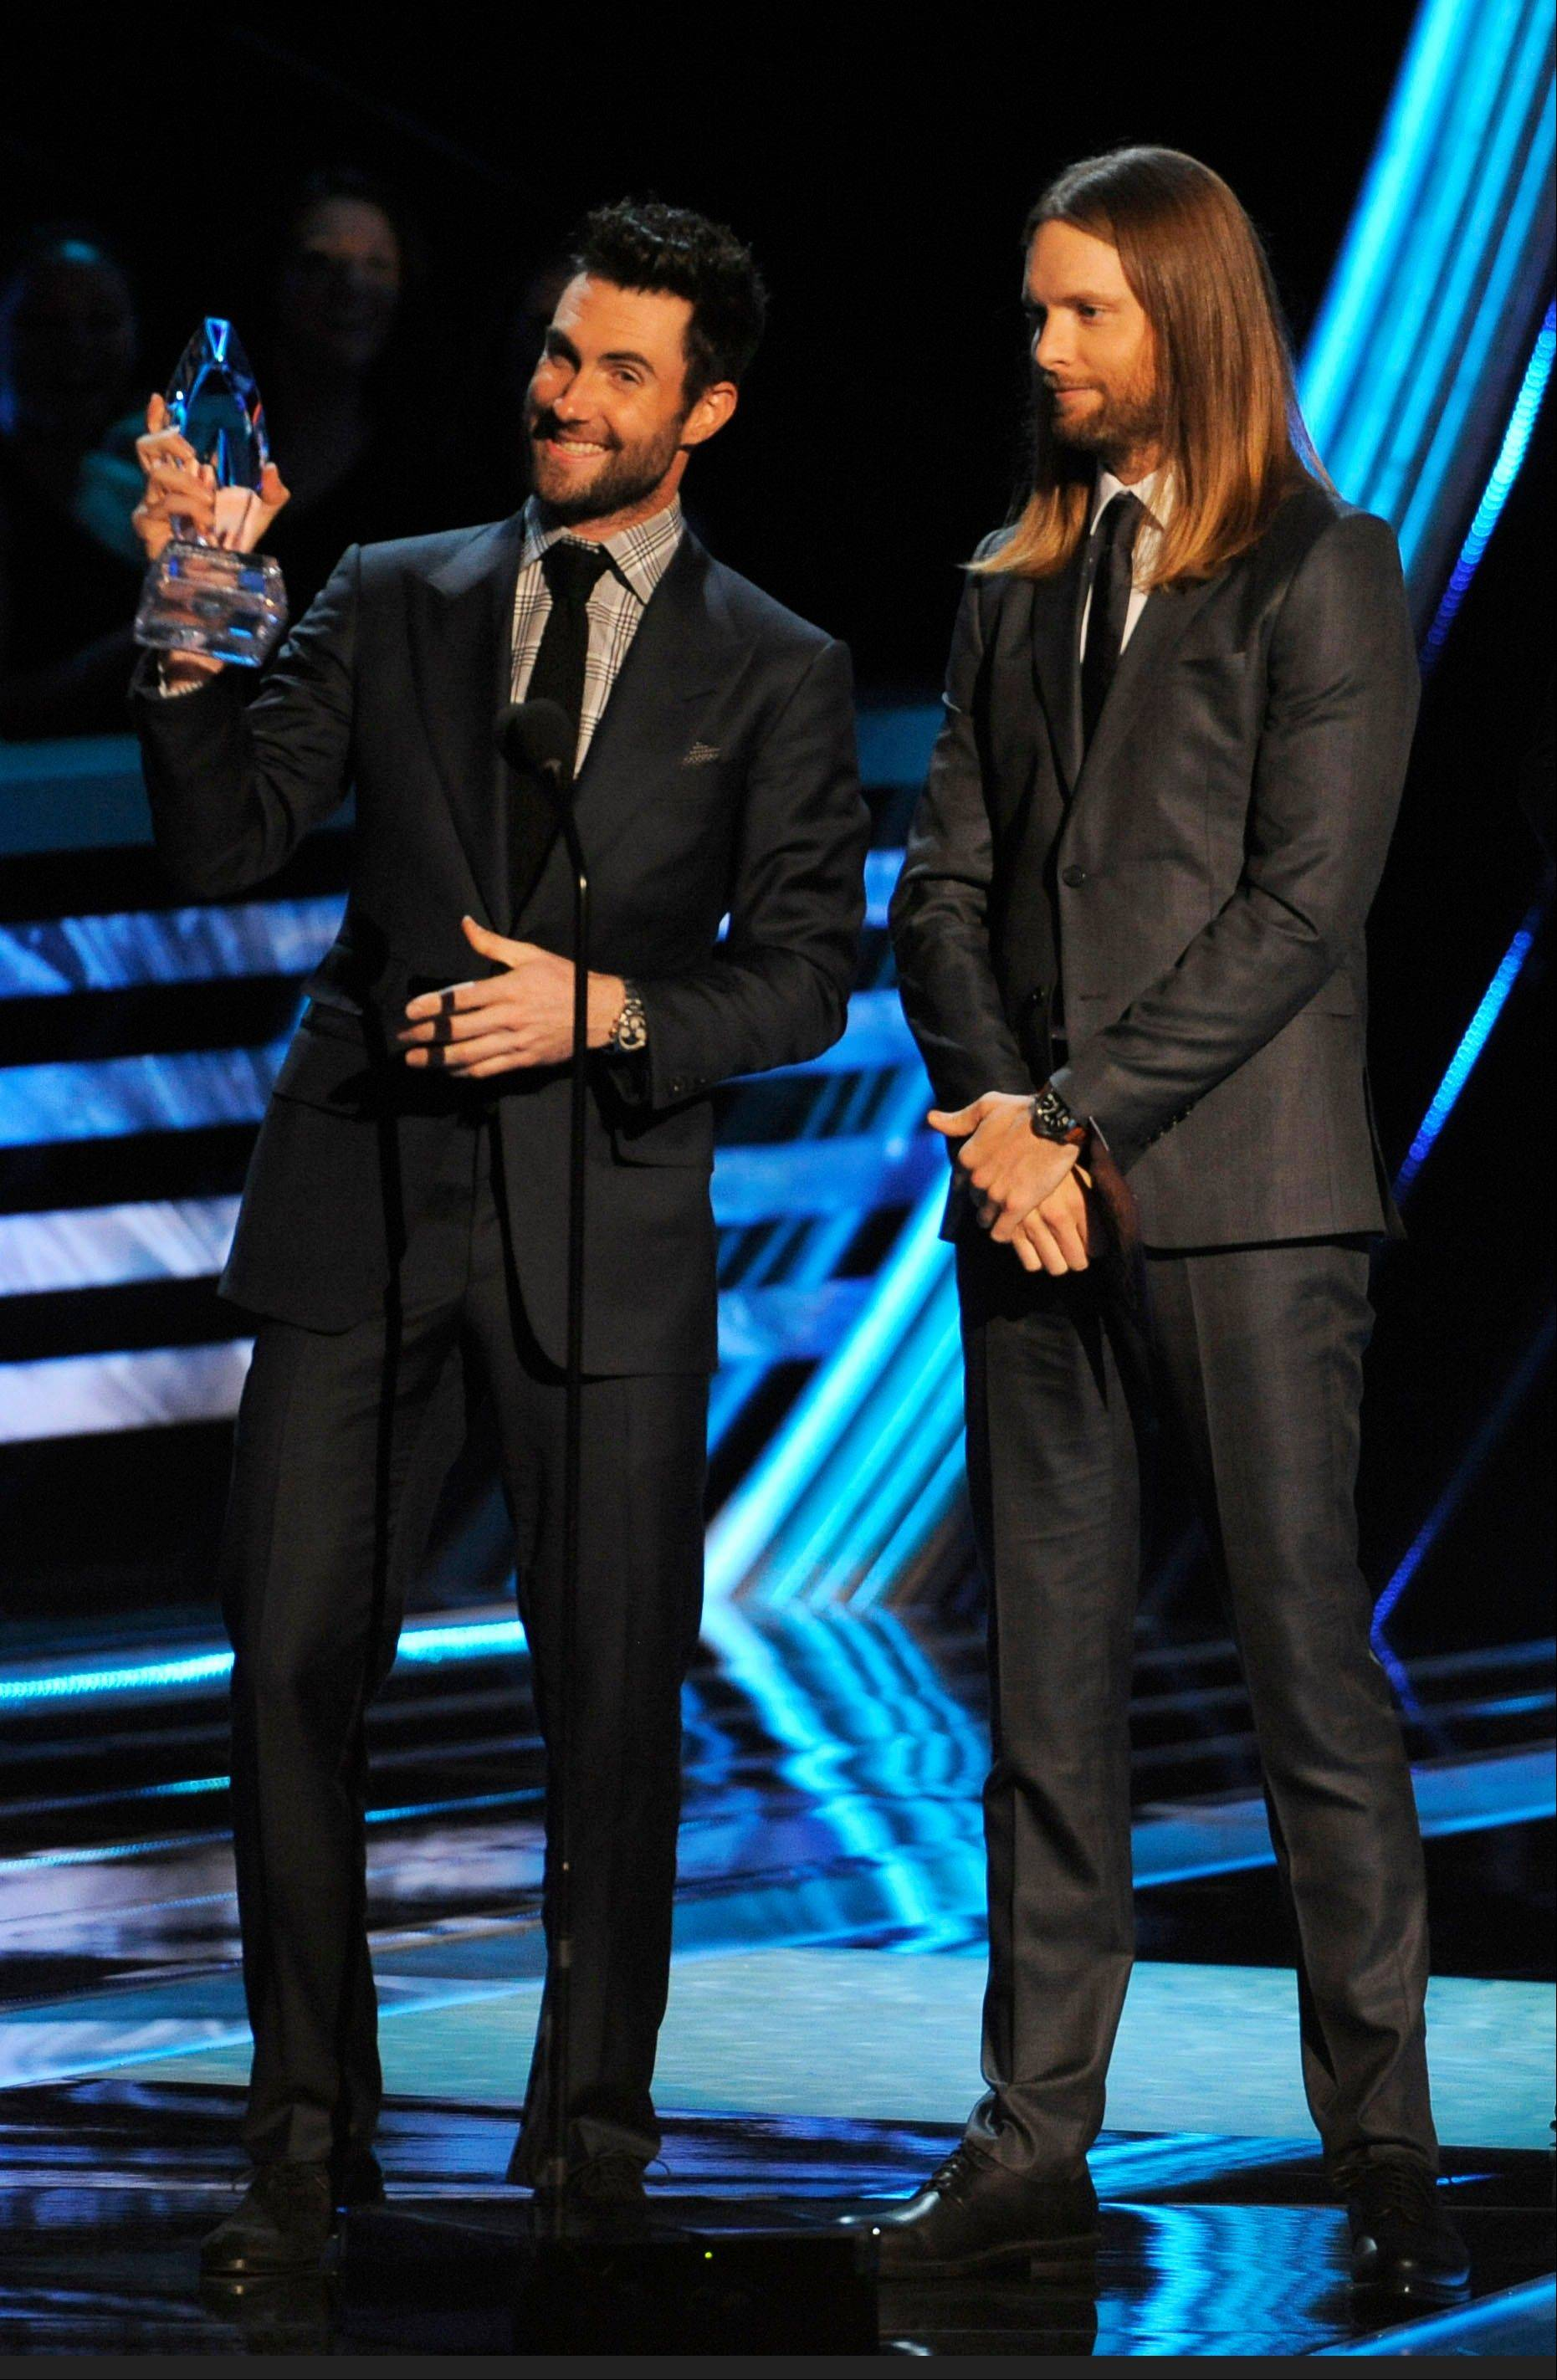 Maroon 5 accept the award for favorite band at the People's Choice Awards at the Nokia Theatre on Wednesday Jan. 9, 2013, in Los Angeles. From left are Adam Levine and James Valentine.